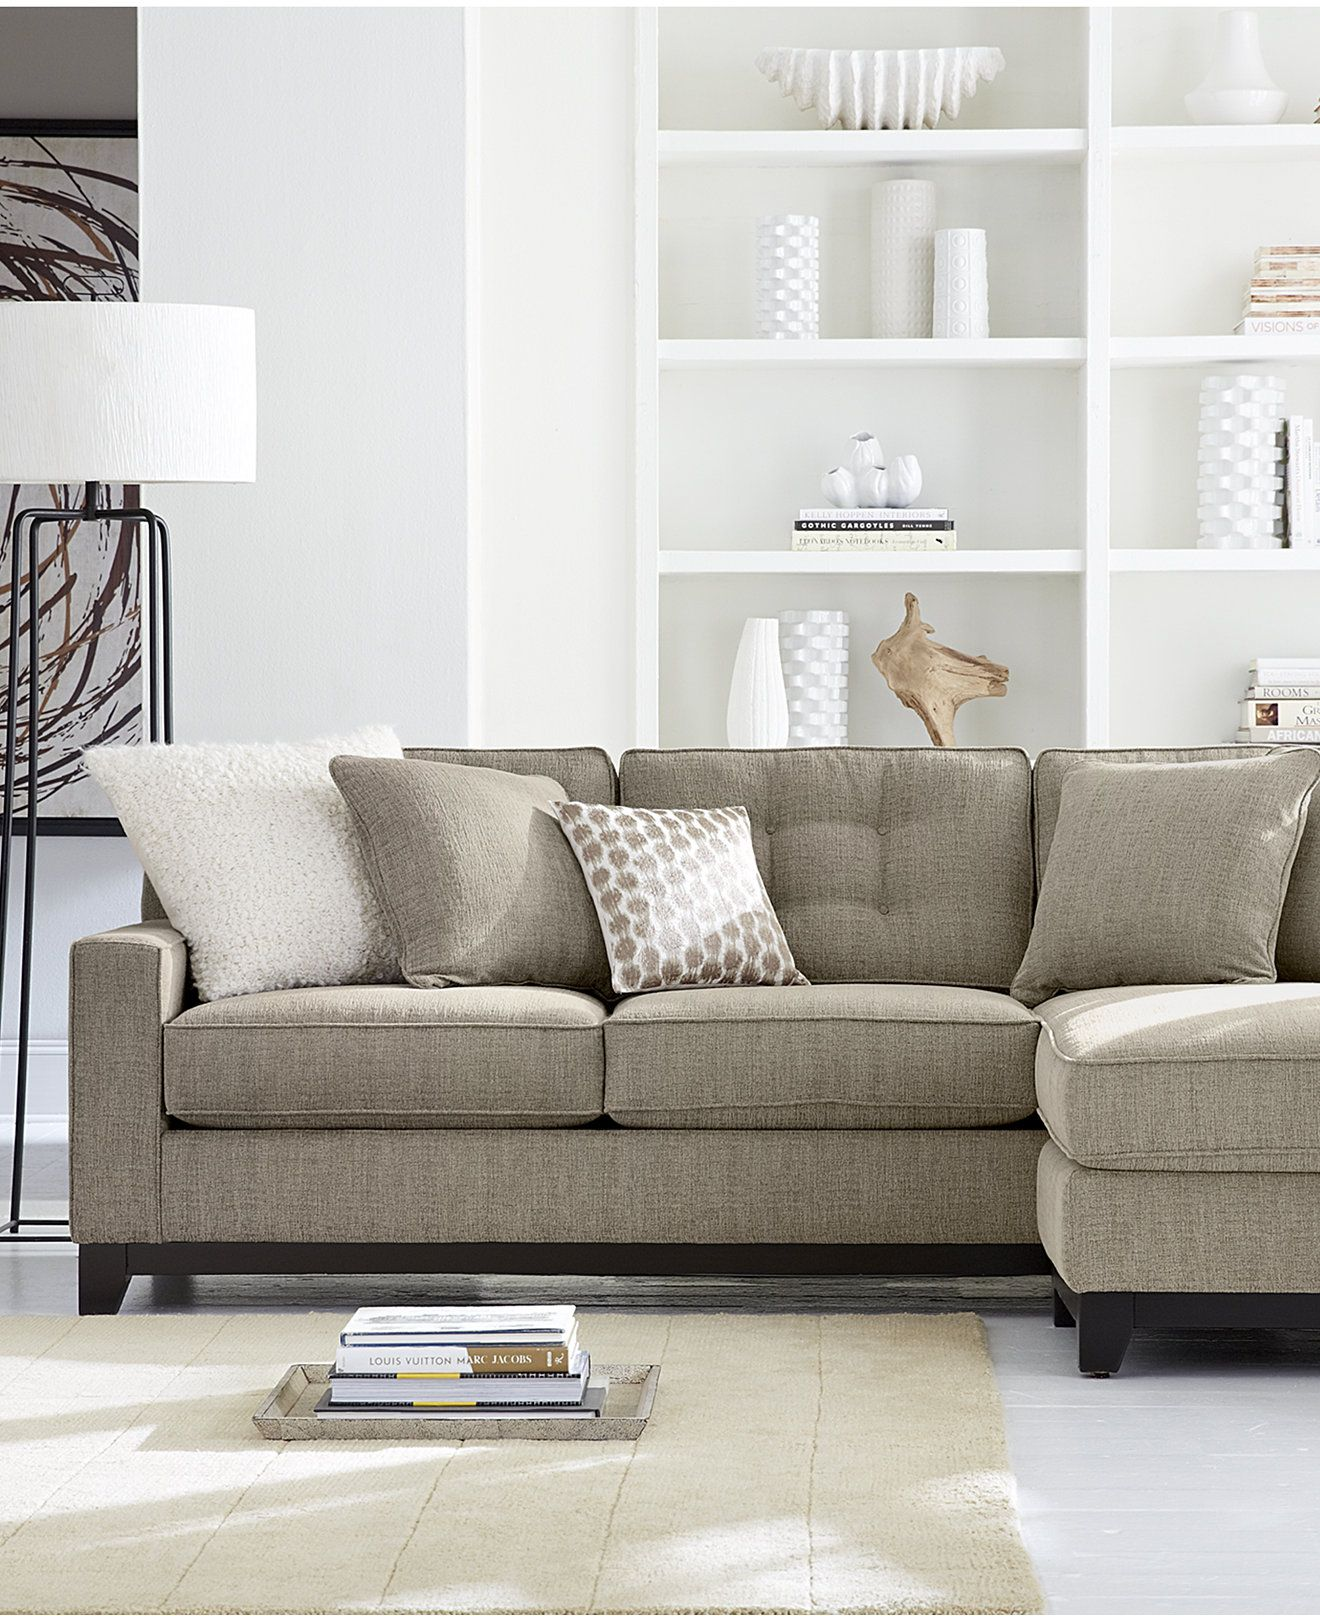 1000 images about living room on pinterest sectional sofas pillow set and brother